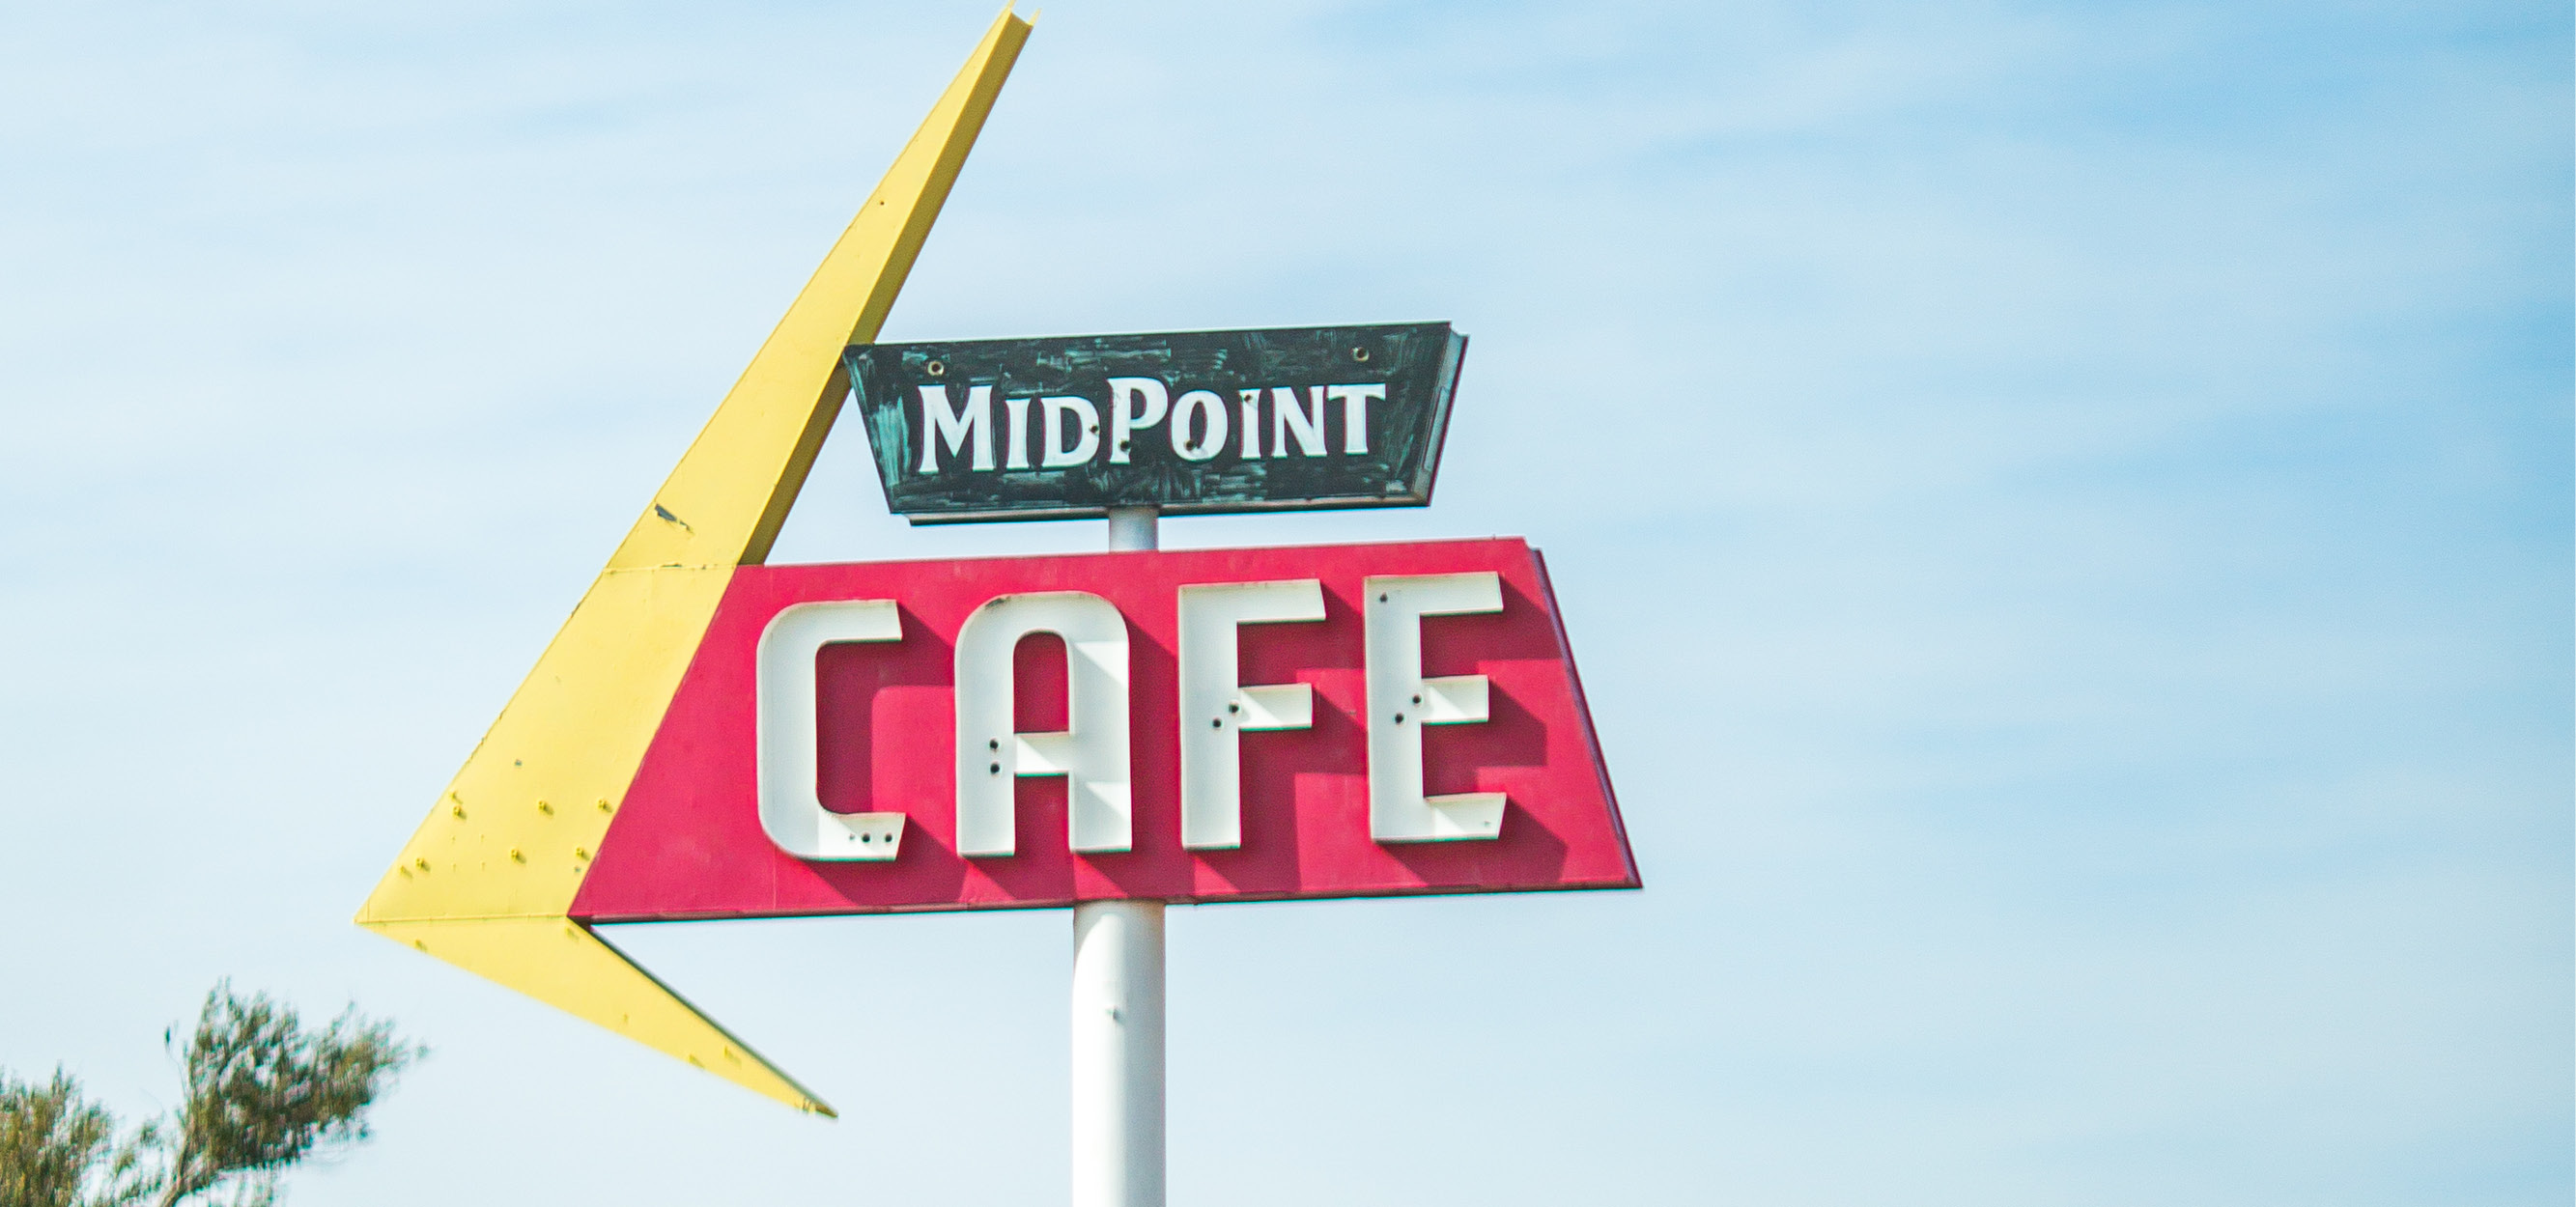 texas-route-66-midpoint-cafe